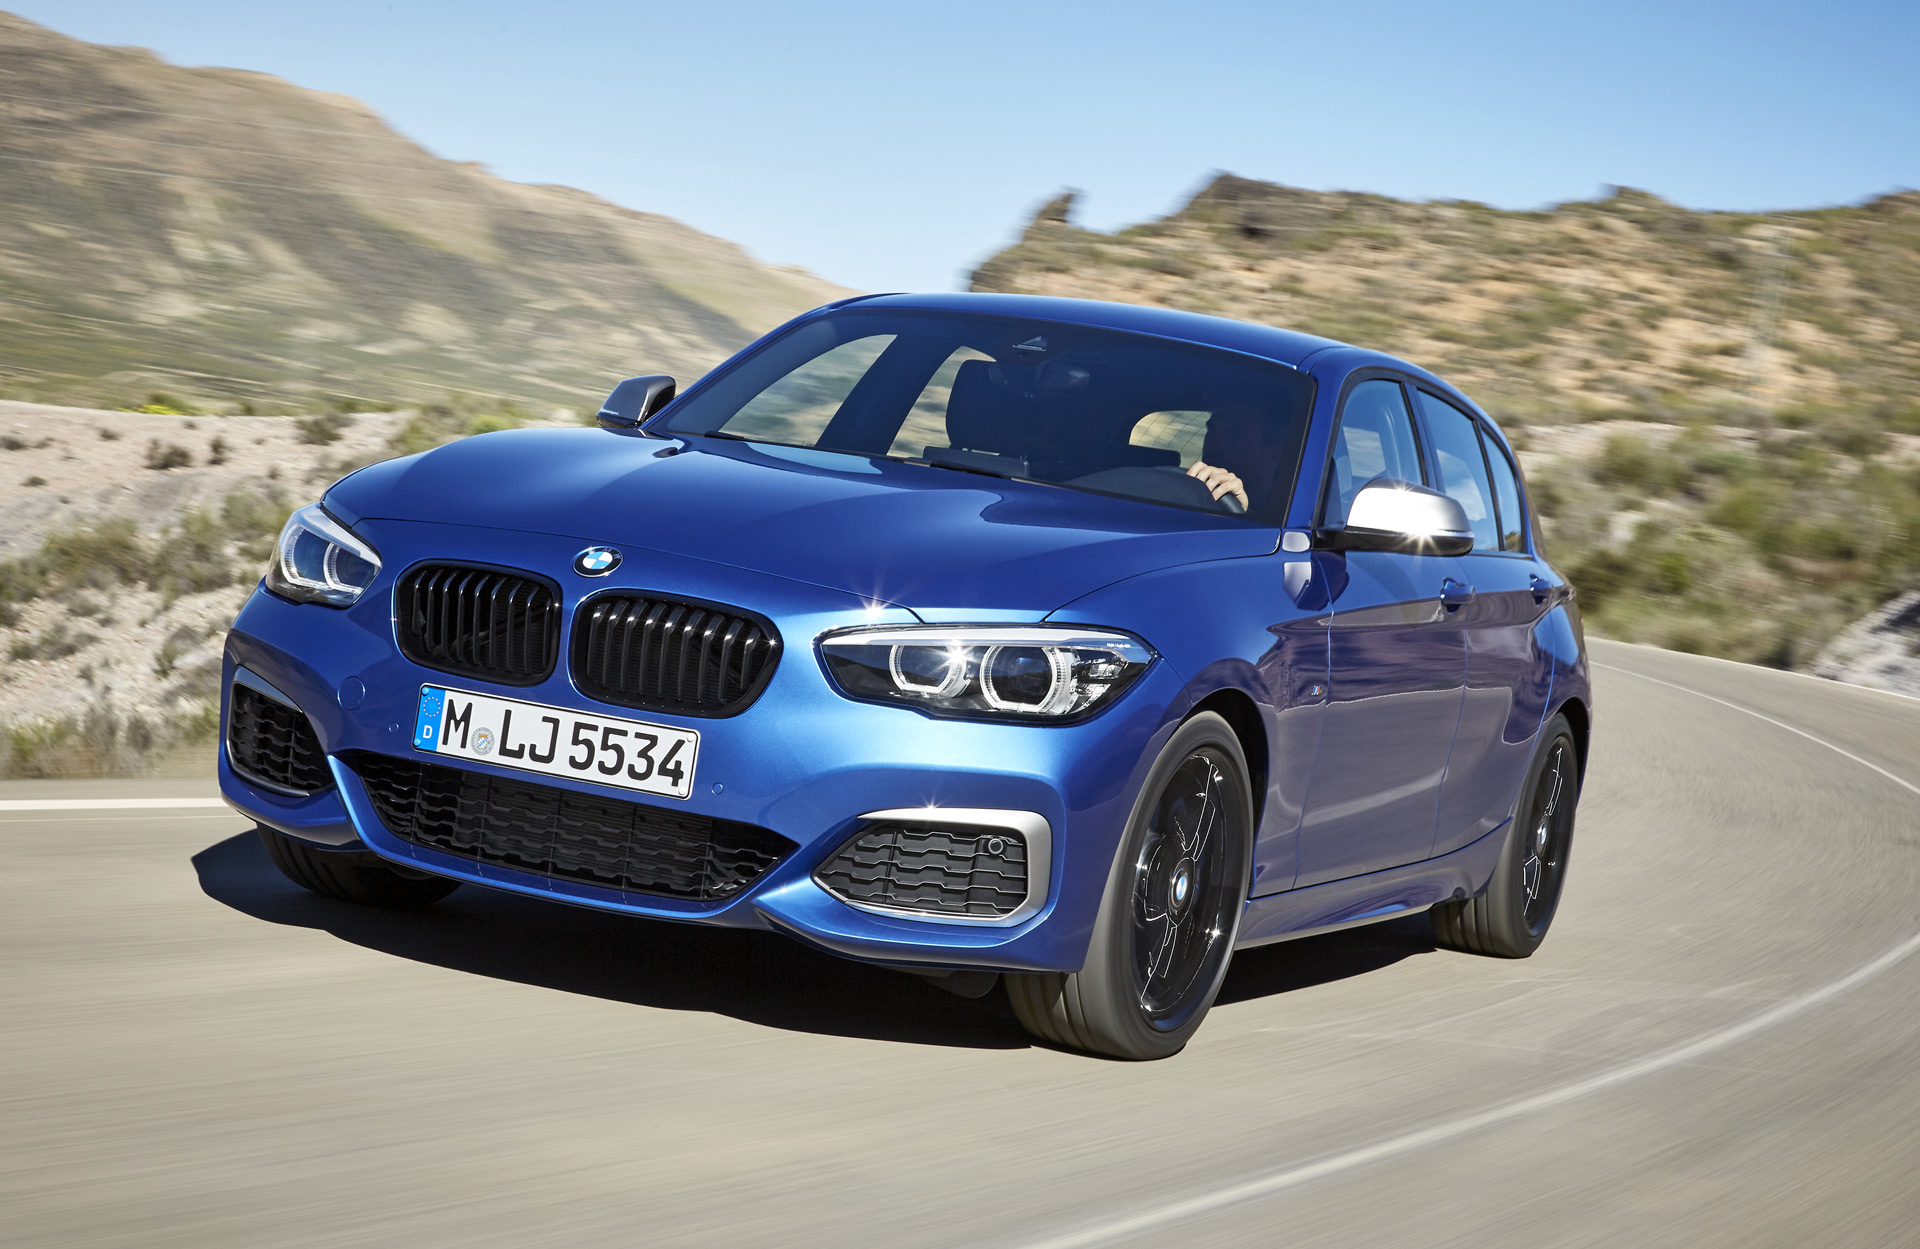 Bmw 1 Series Hatchback Gets Minor Updates Ahead Of